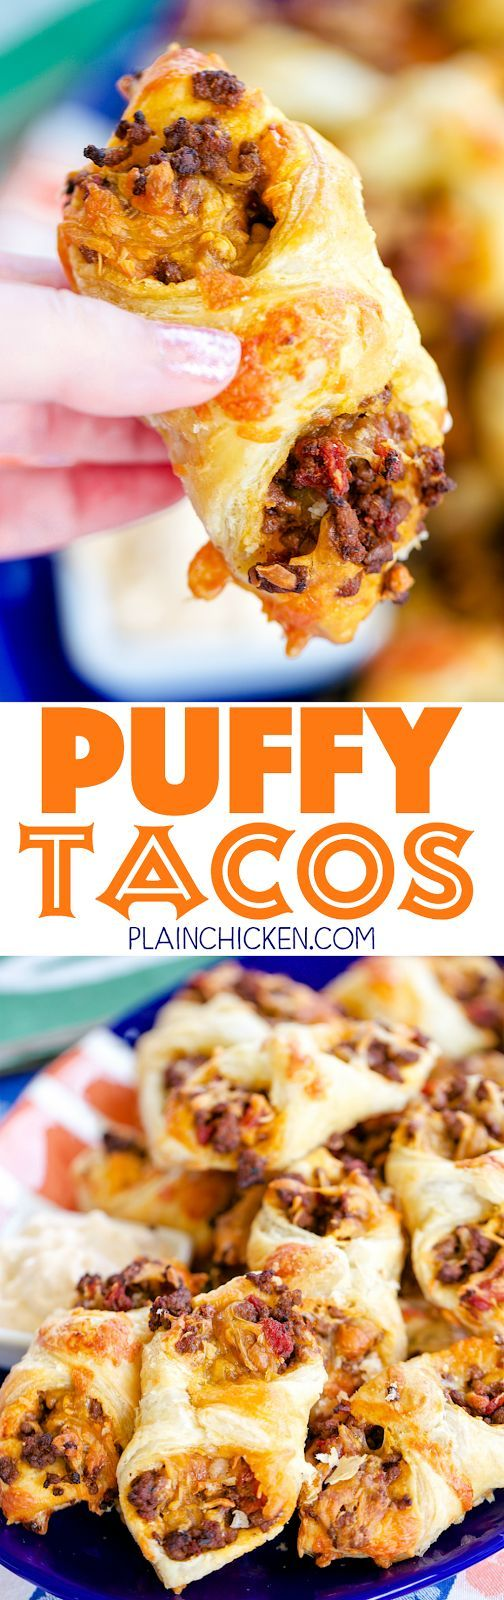 Puffy Tacos - my favorite way to eat tacos! Only 5 ingredients - hamburger, taco seasoning, diced tomatoes and green chiles, cheese and puff pastry. Ready to eat in minutes!! Can make ahead of time and freeze for later. Great for tailgating and parties!